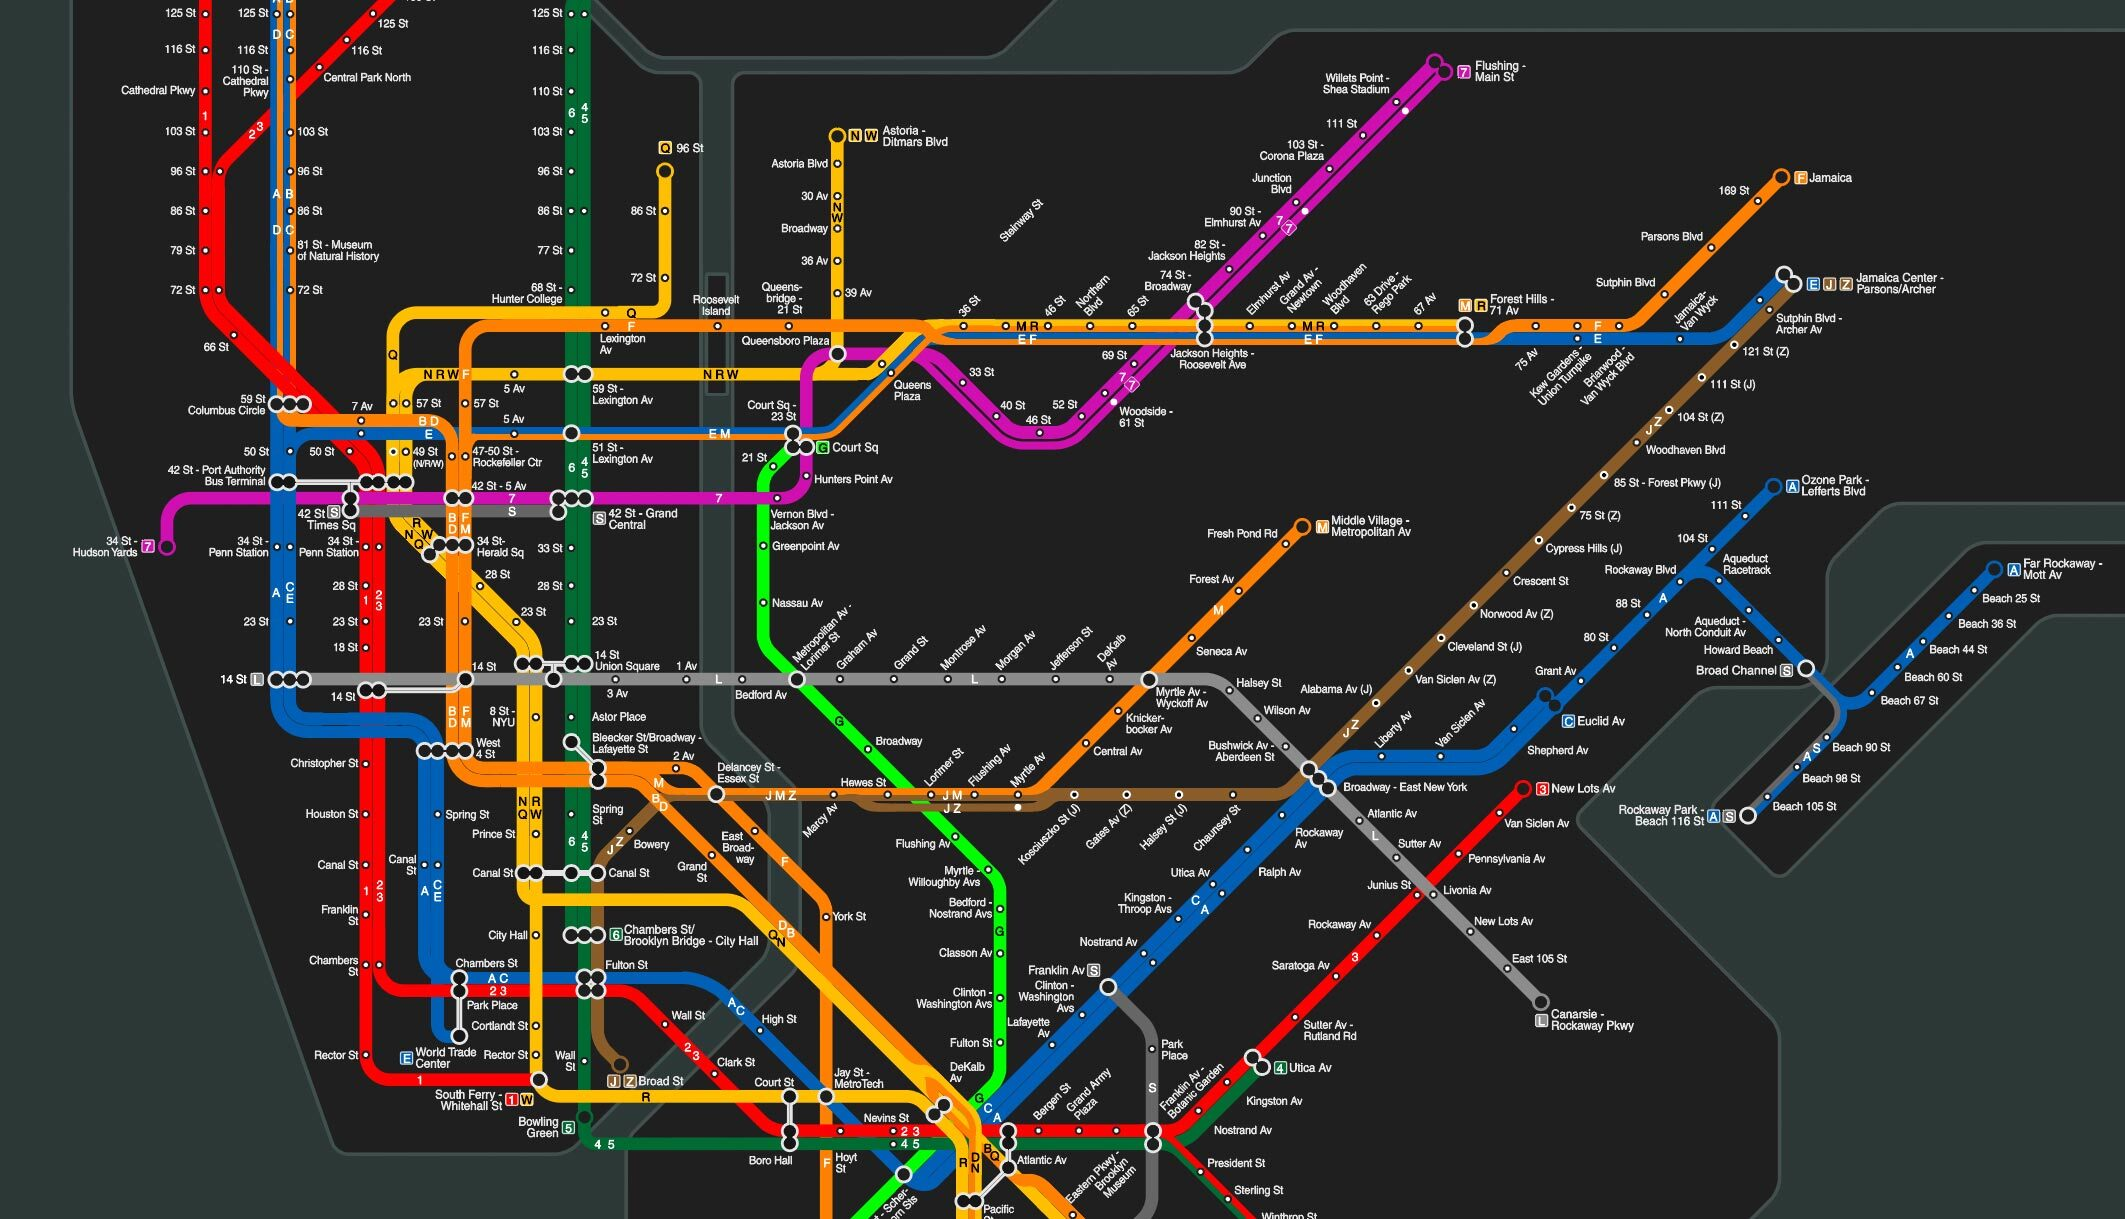 map of new york cities subway system representing customer journey